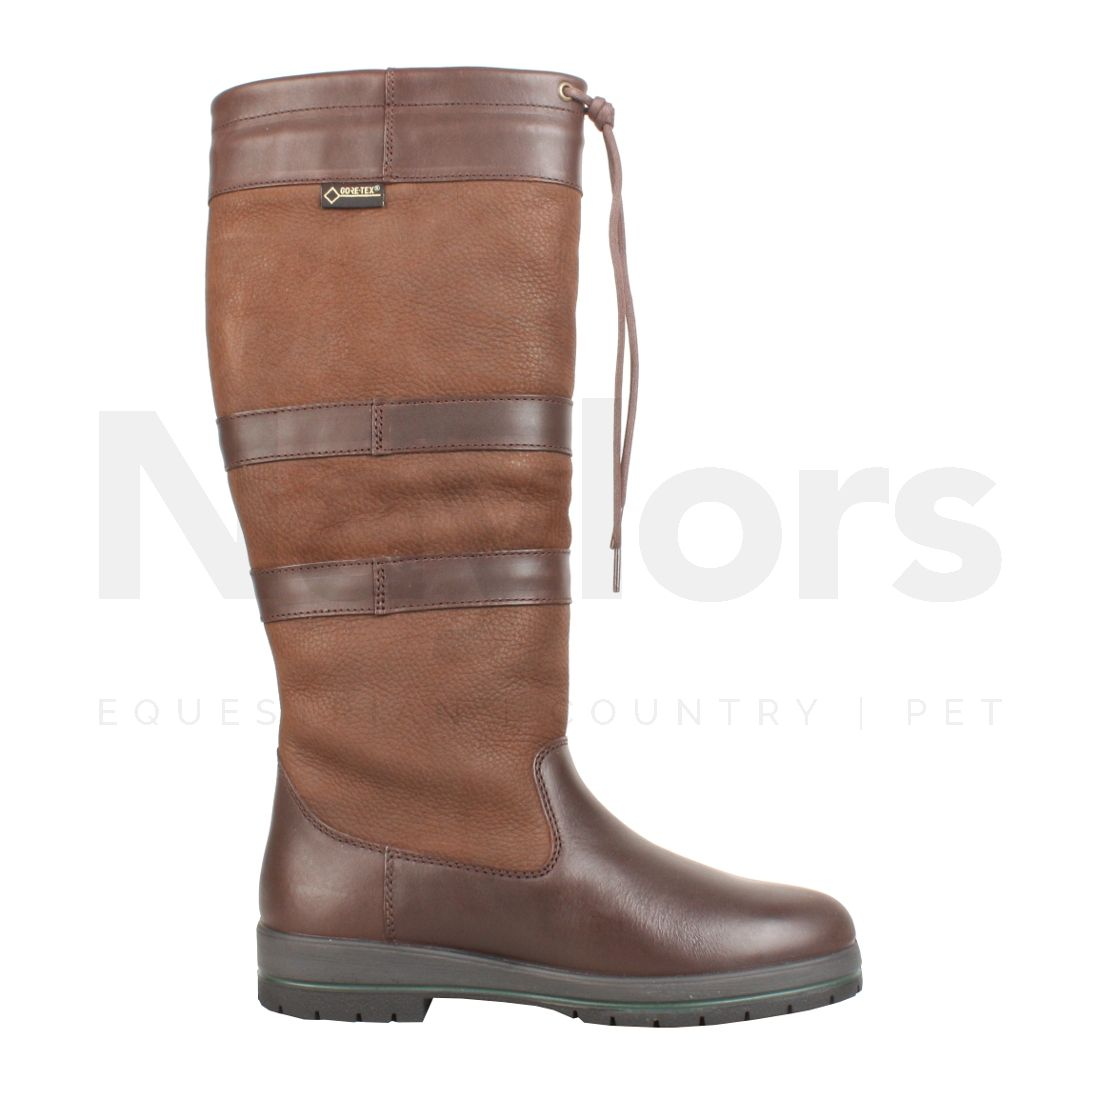 d67566c31bc Dubarry Galway Country Boots Walnut